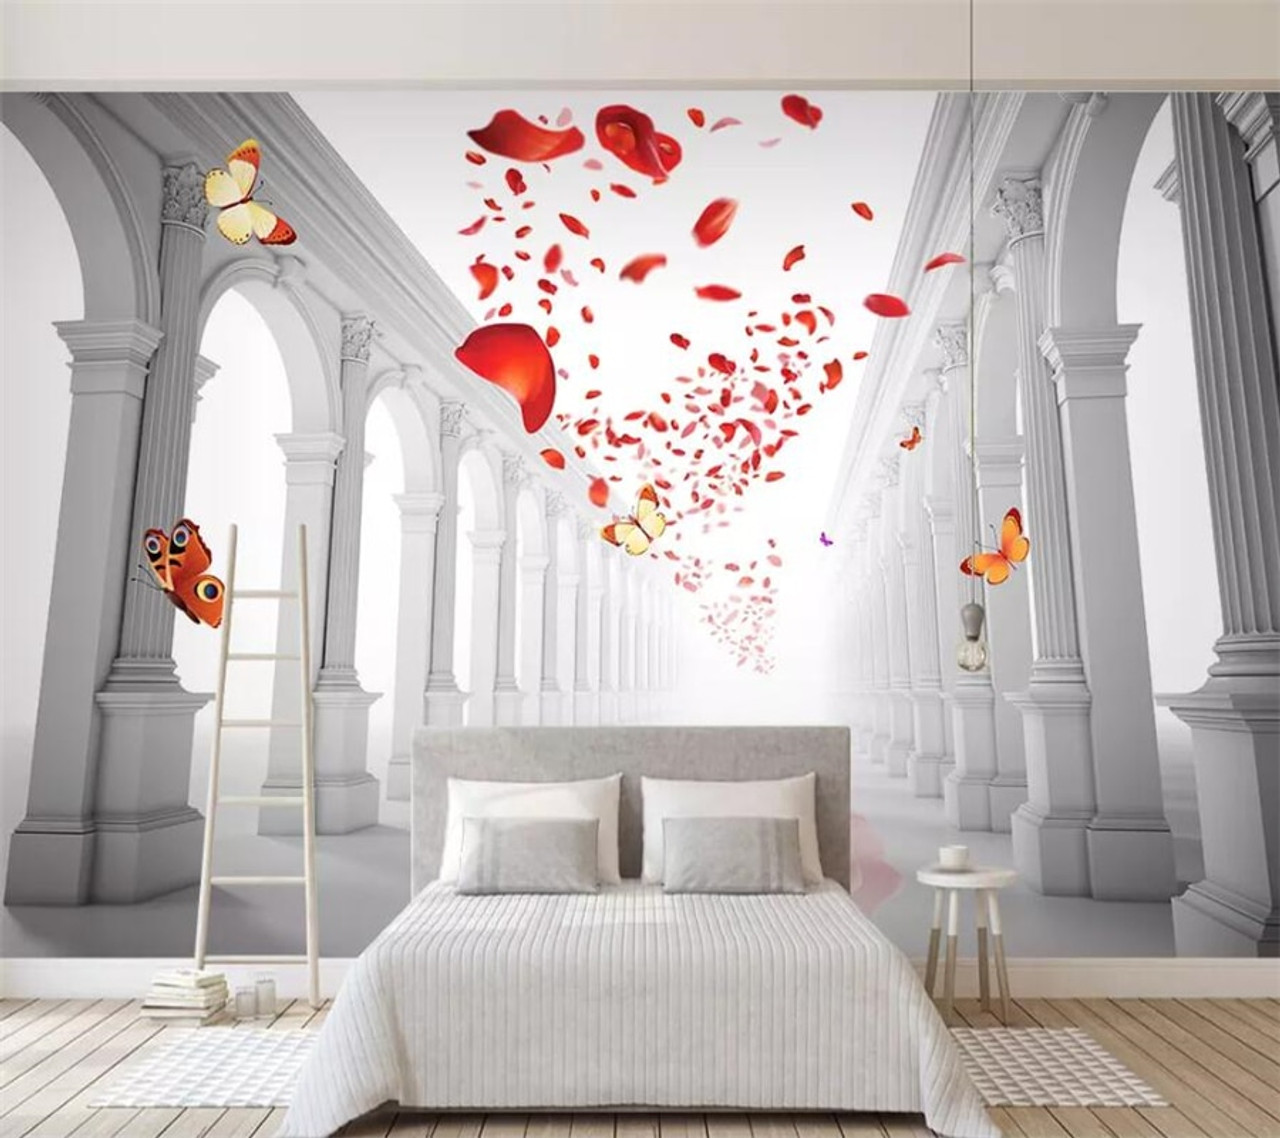 beibehang Custom wallpaper 3d photo murals European romantic wedding hall living room TV background wall painting  87687.1549108330